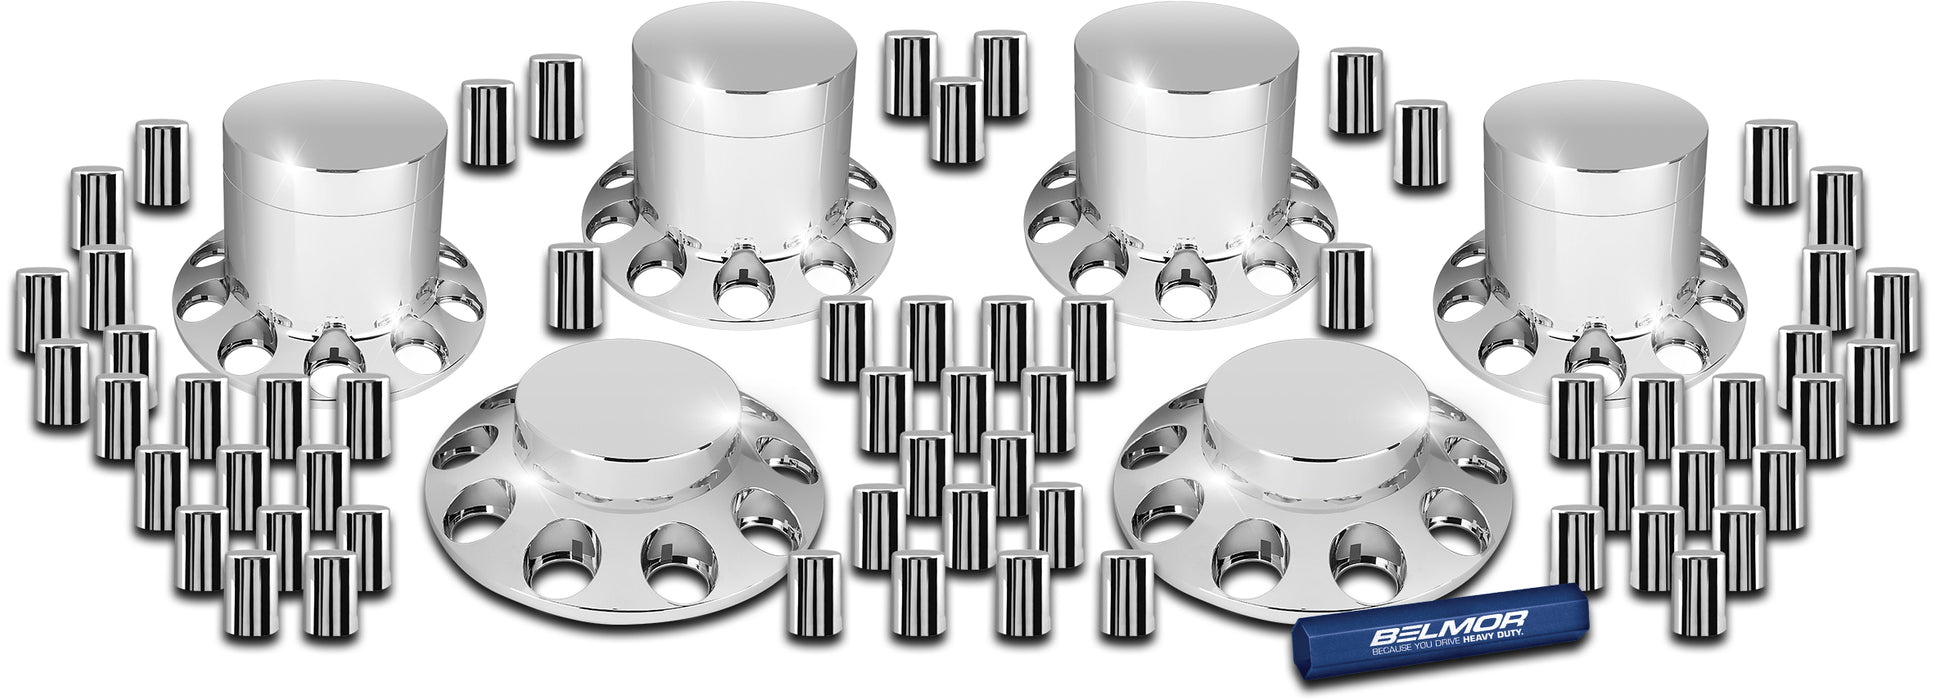 Chrome plastic axle cover kit w/33mm threaded flat top lugnut covers, flat top center caps - 2 fronts, 4 rears, installation tool